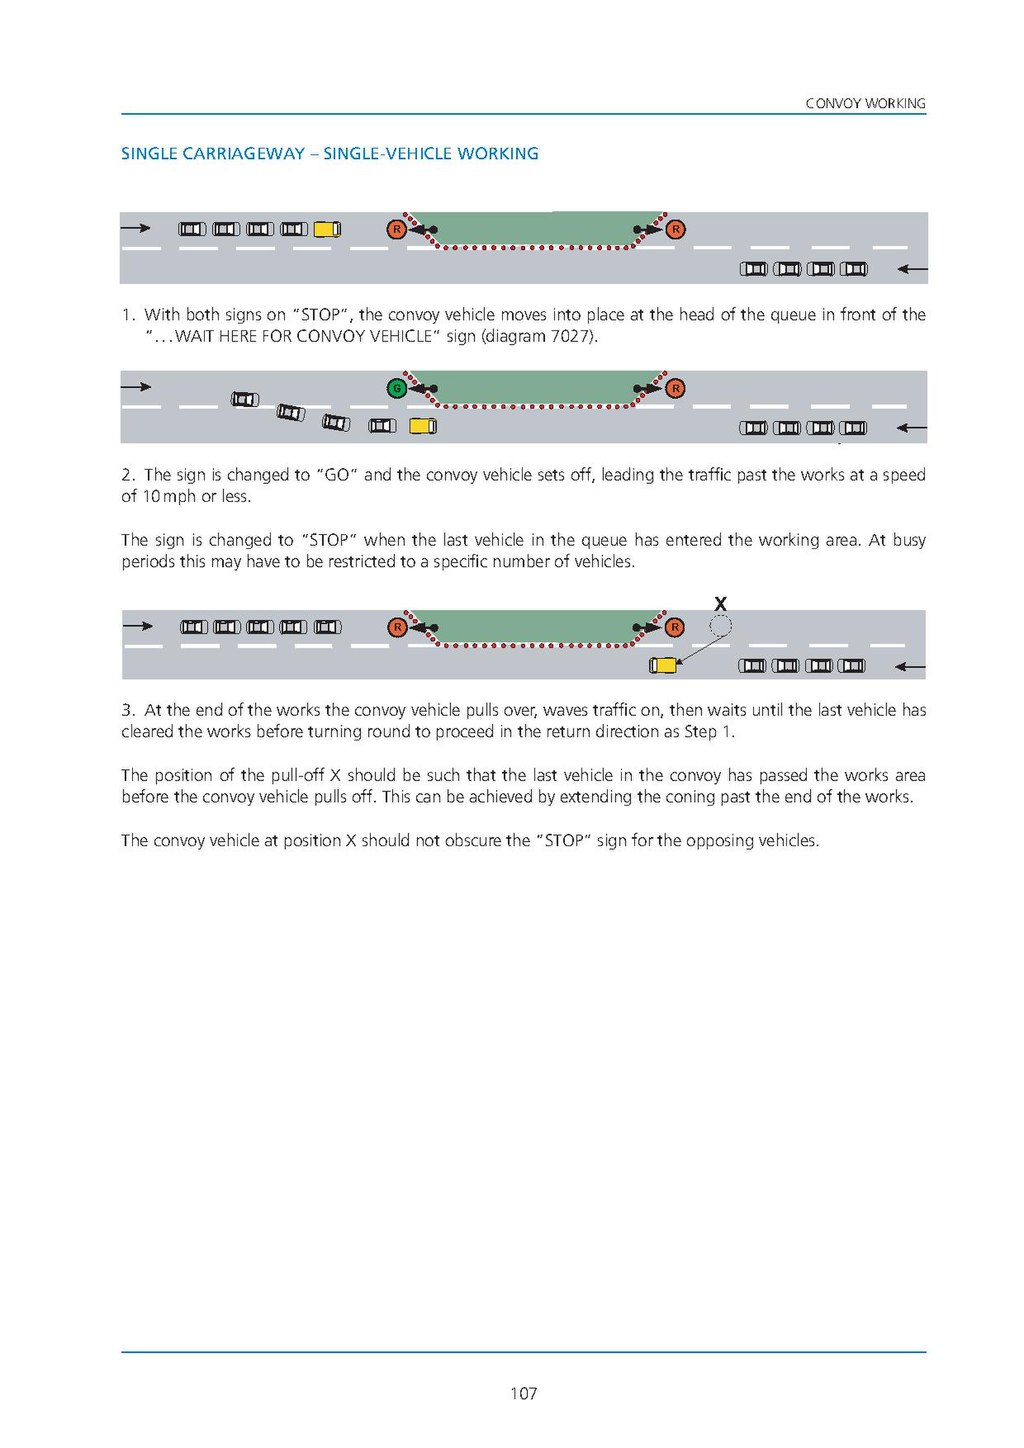 chapter 8 traffic signs manual part 3